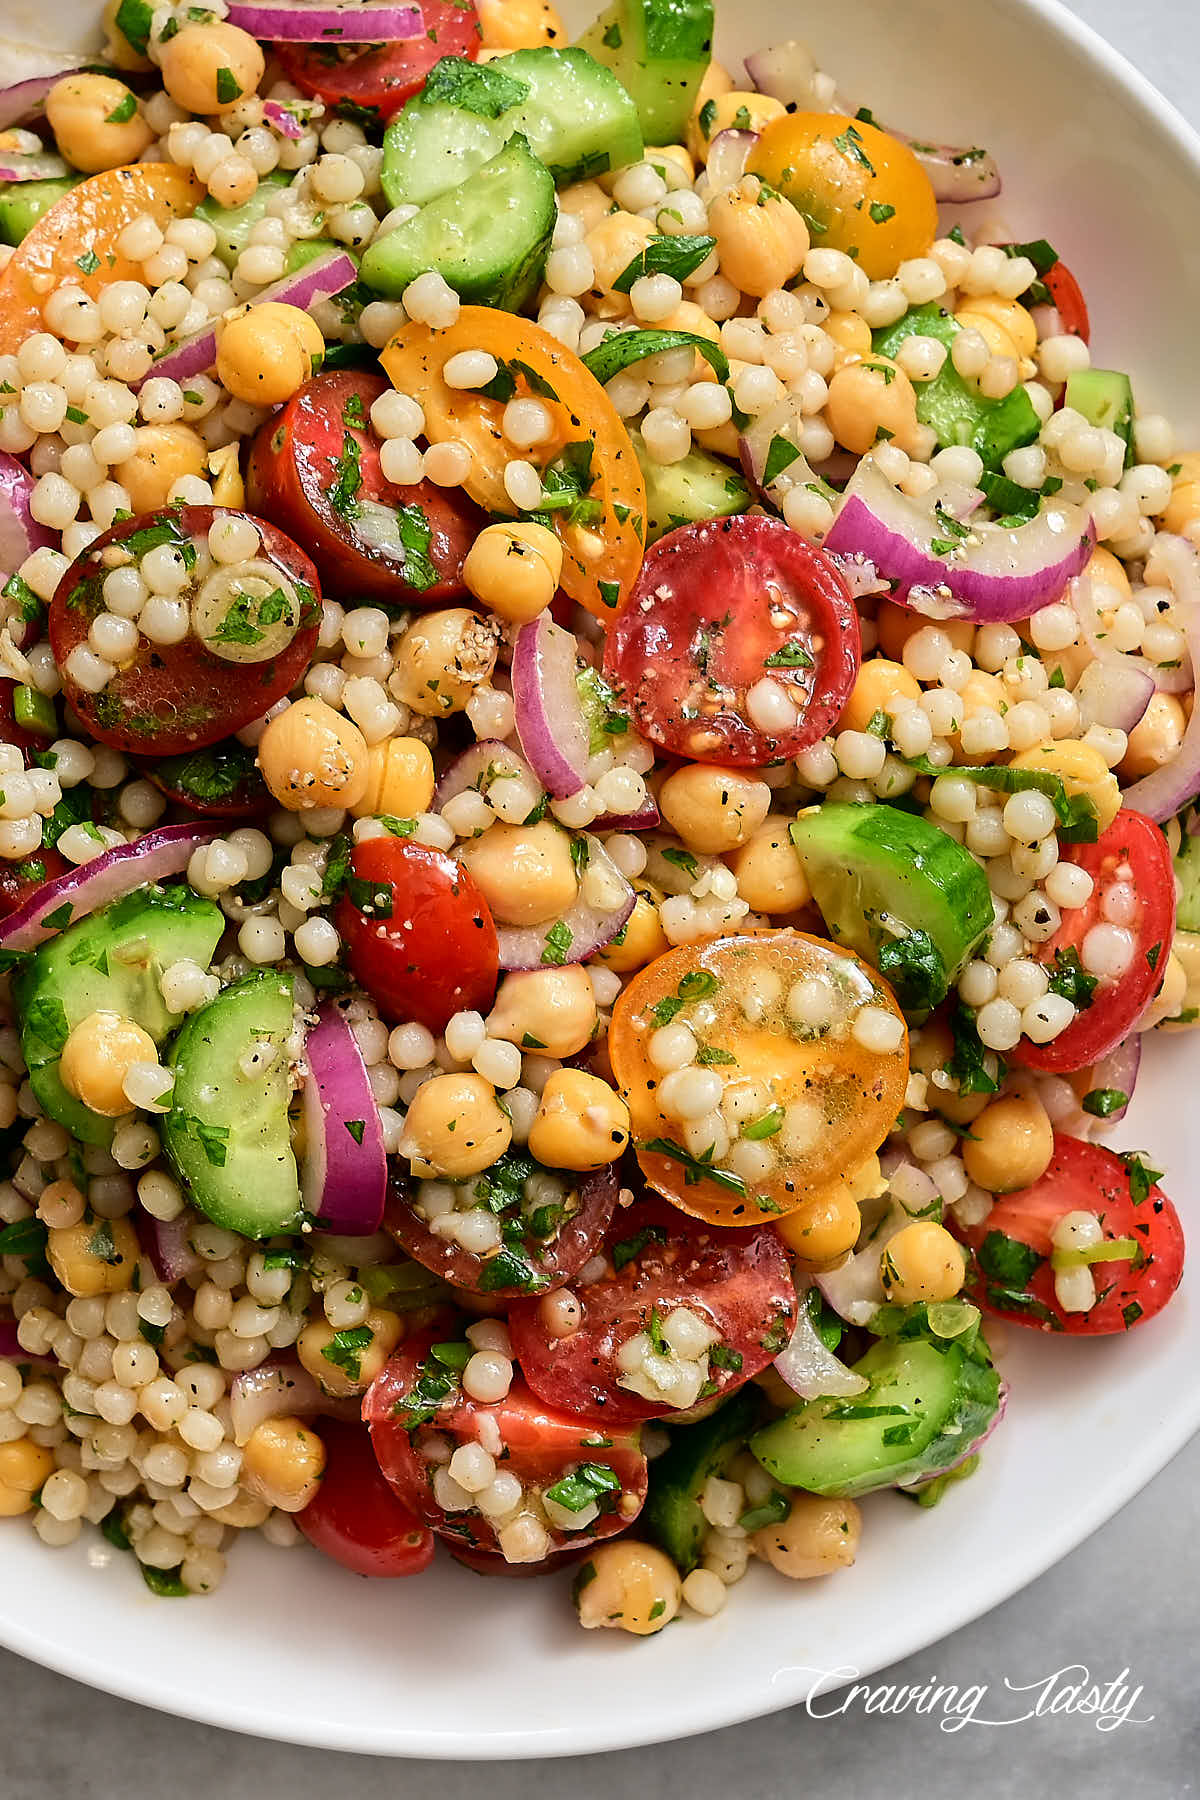 Israeli couscous salad with heirloom tomatoes, cucumbers and herbs on a white plate.